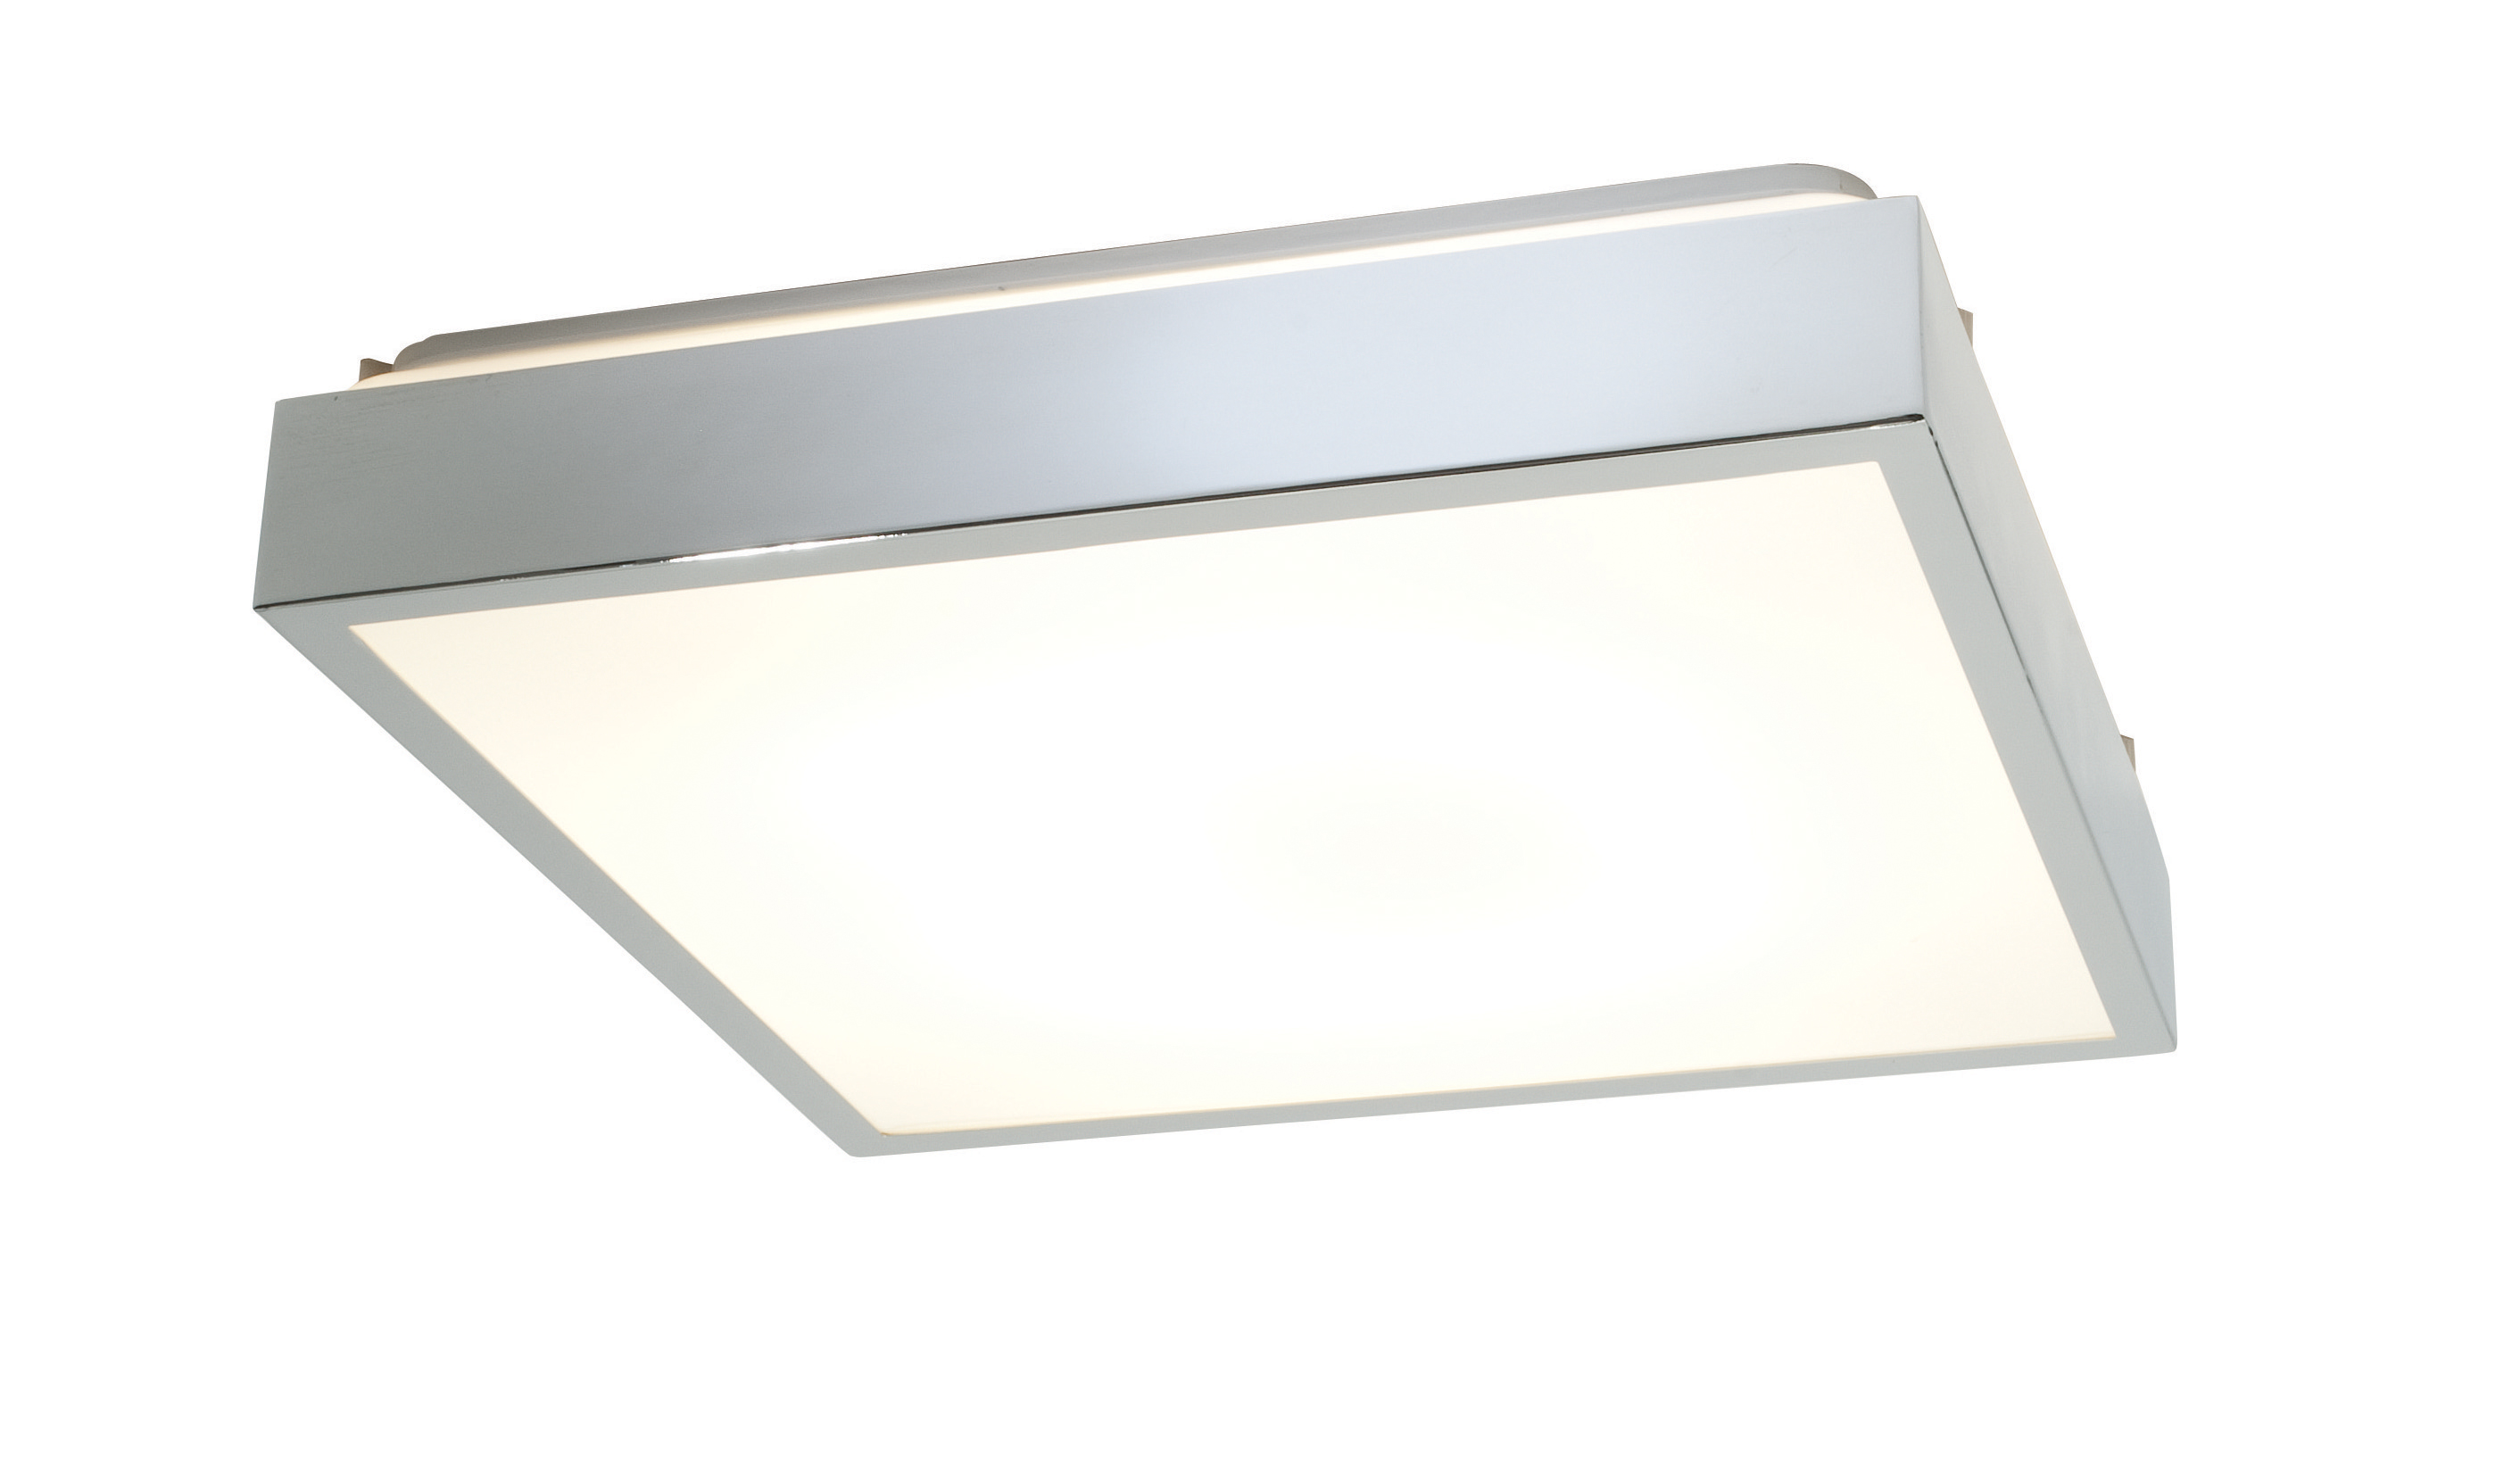 saxby cubita large 35215 square bathroom ceiling light 38w 10033